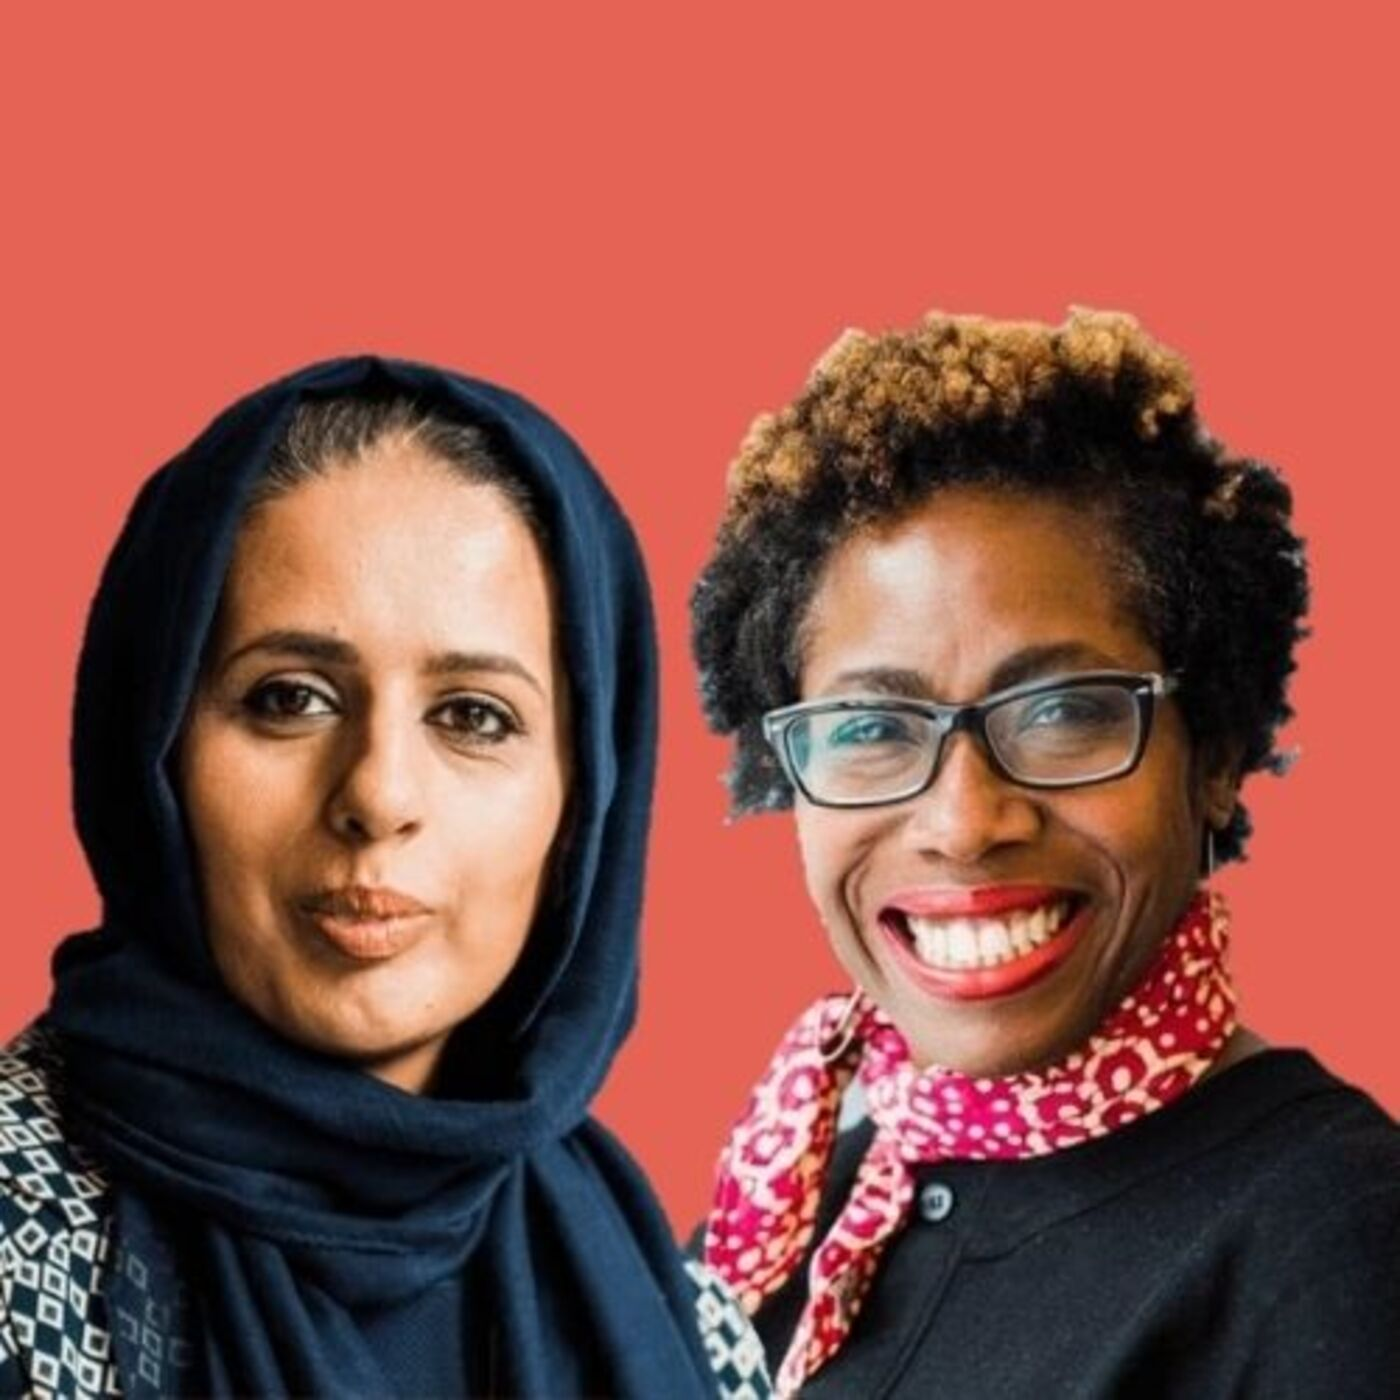 Series 3, Episode 14: Building an anti-racist and inclusive culture, with Yvonne Howard and Safina Nadeem